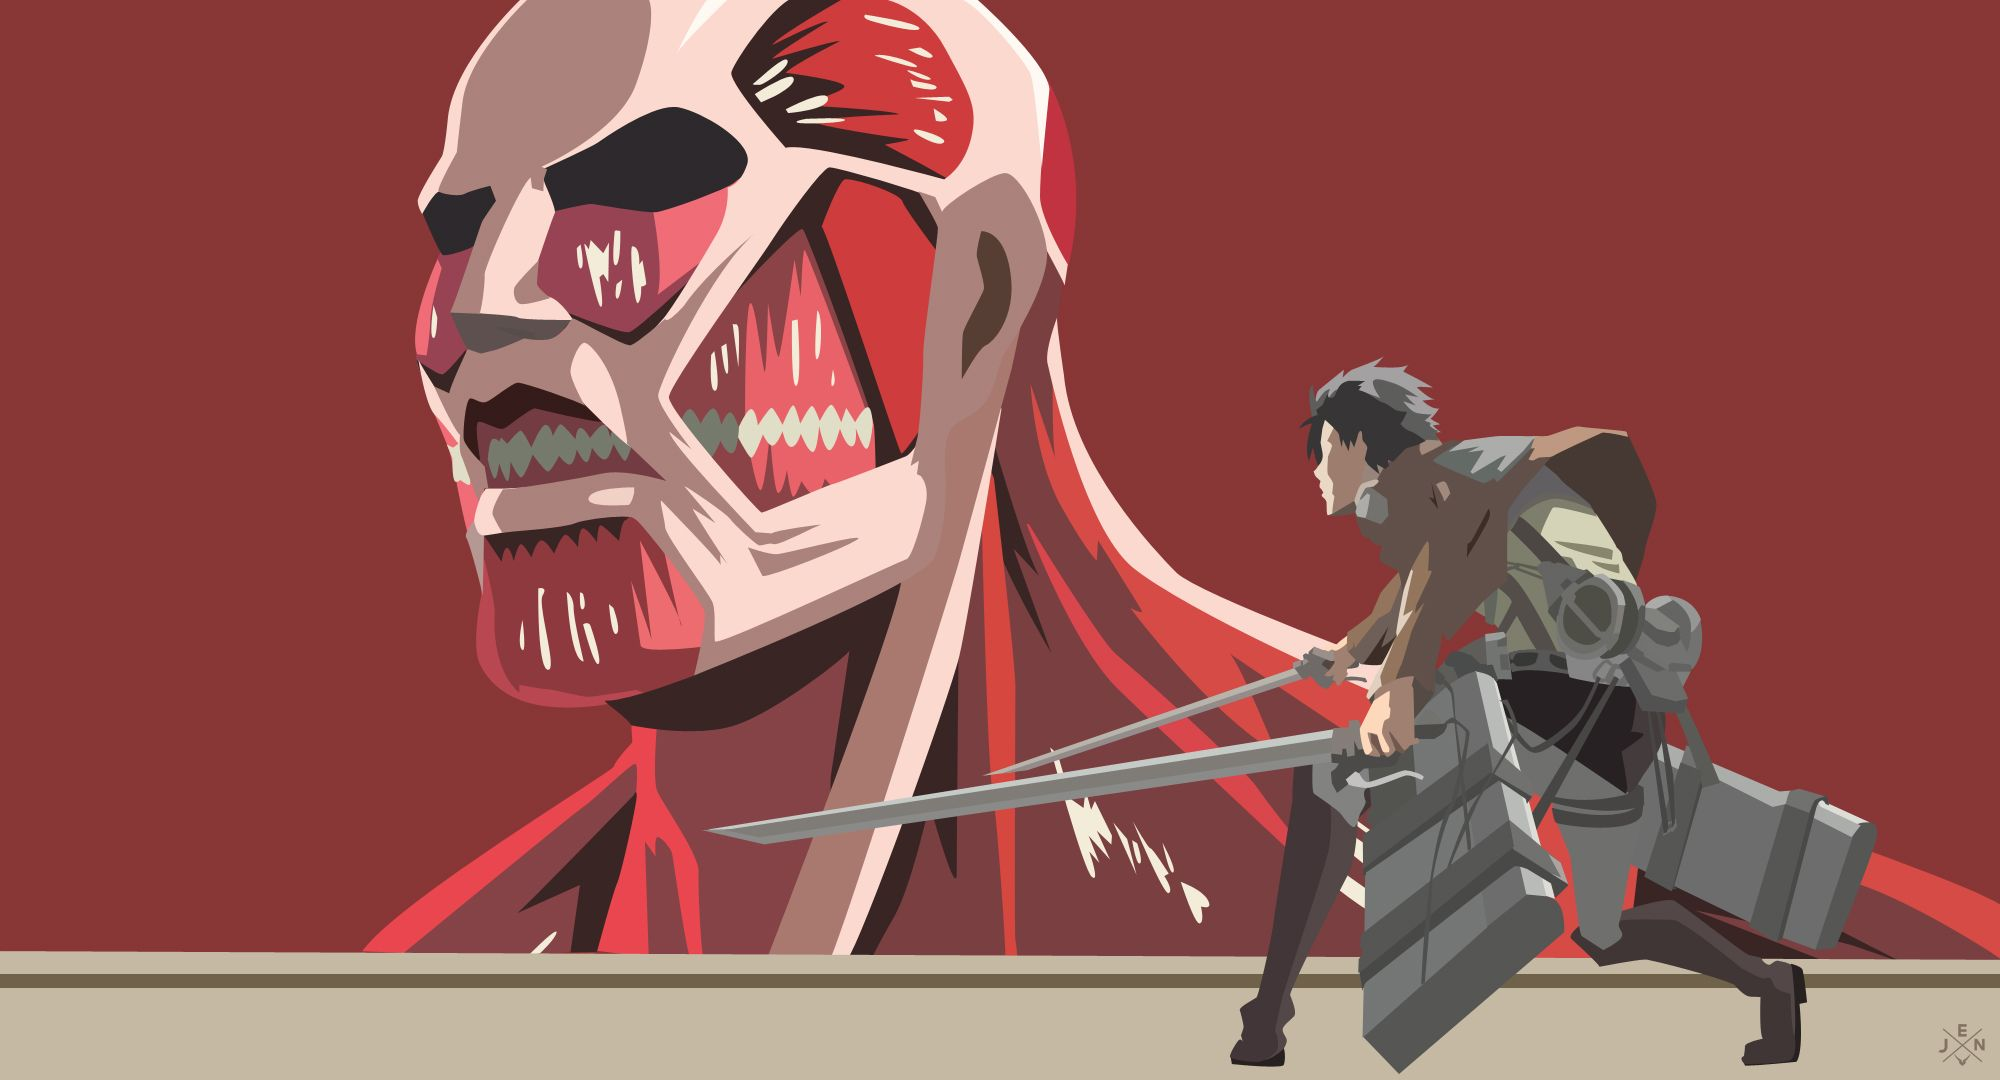 Eren X Colosal Titan By Jmsedwrd Cool Anime Wallpapers Attack On Titan Anime Titans Anime